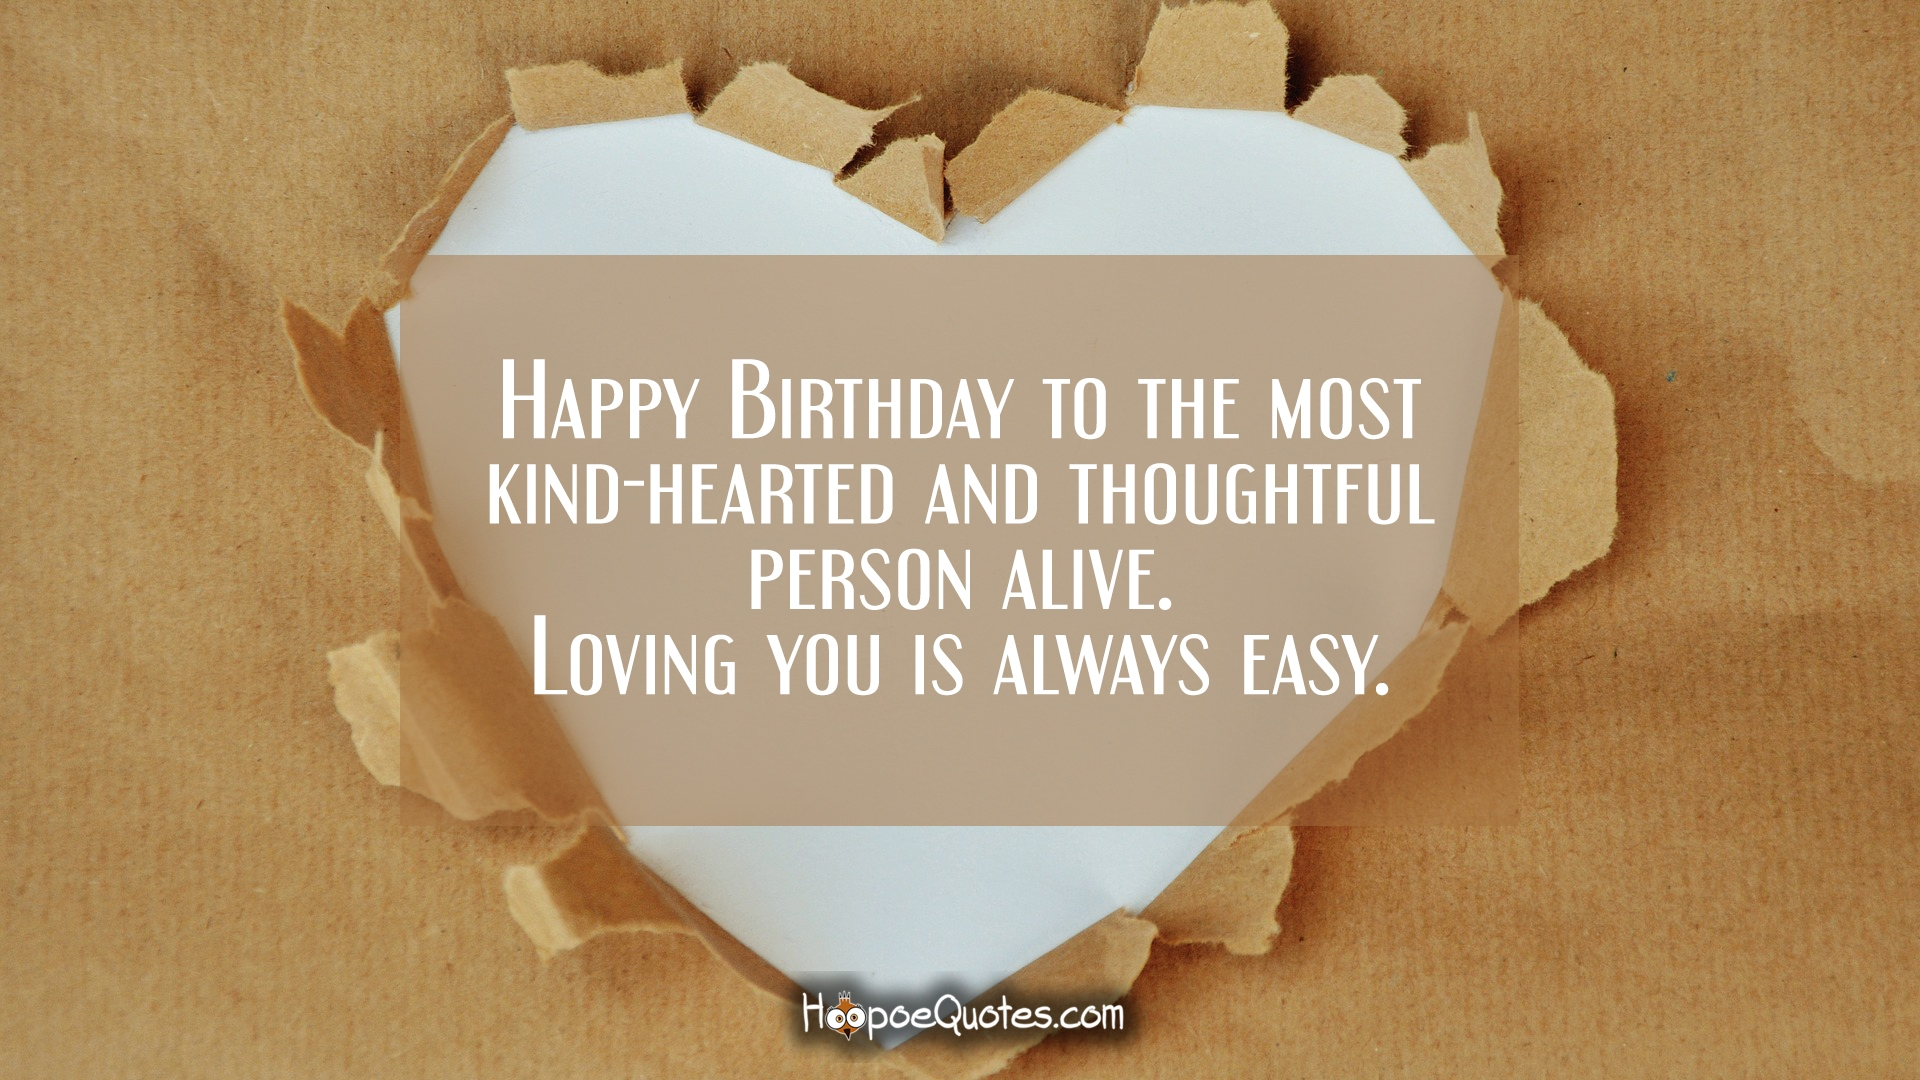 Happy Birthday My King Quotes ~ Happy birthday husband birthday wishes for husband with images